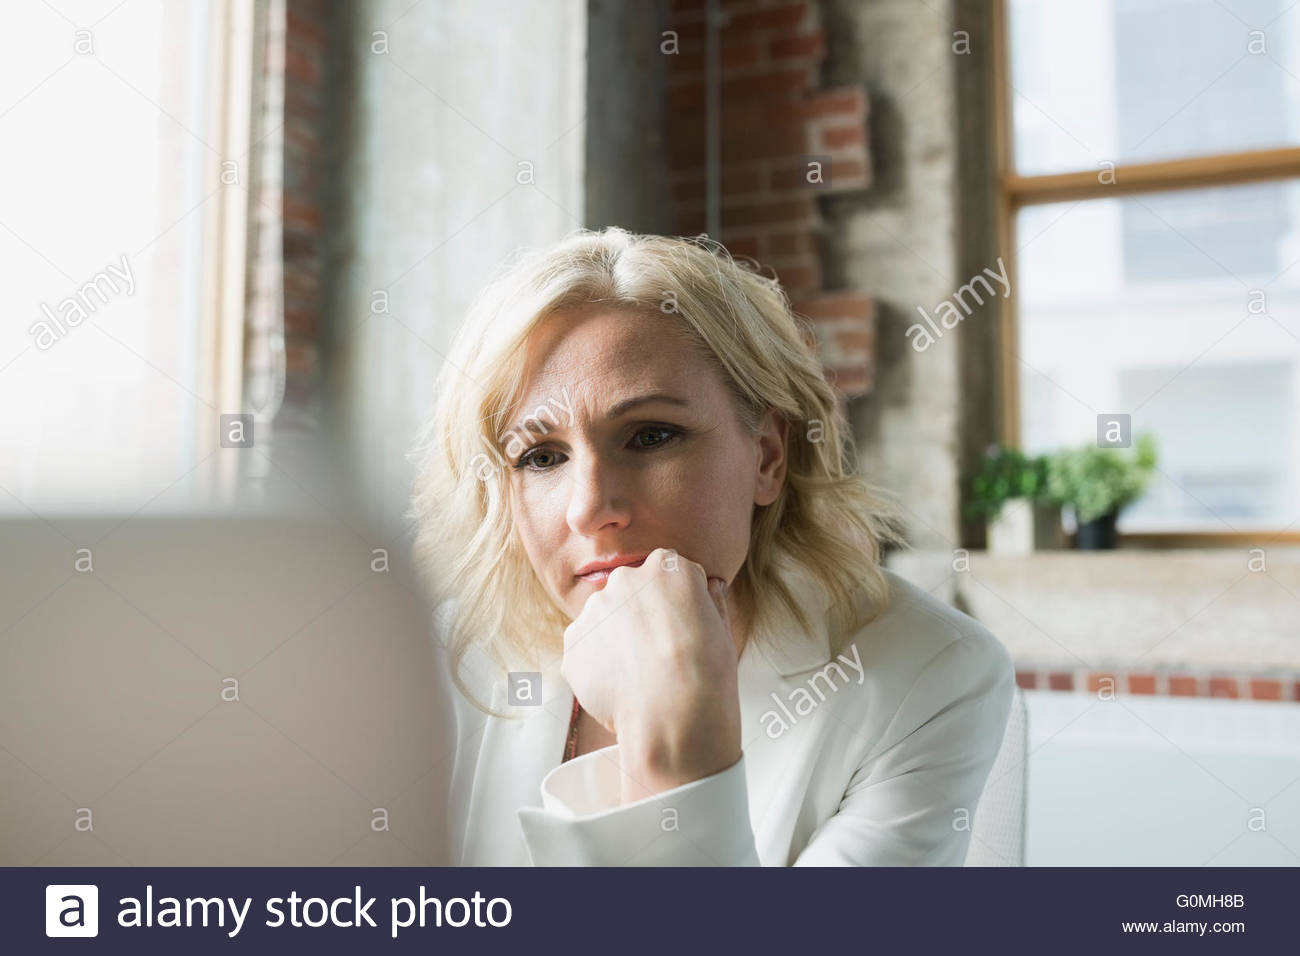 Serious businesswoman using computer in office - Stock Image